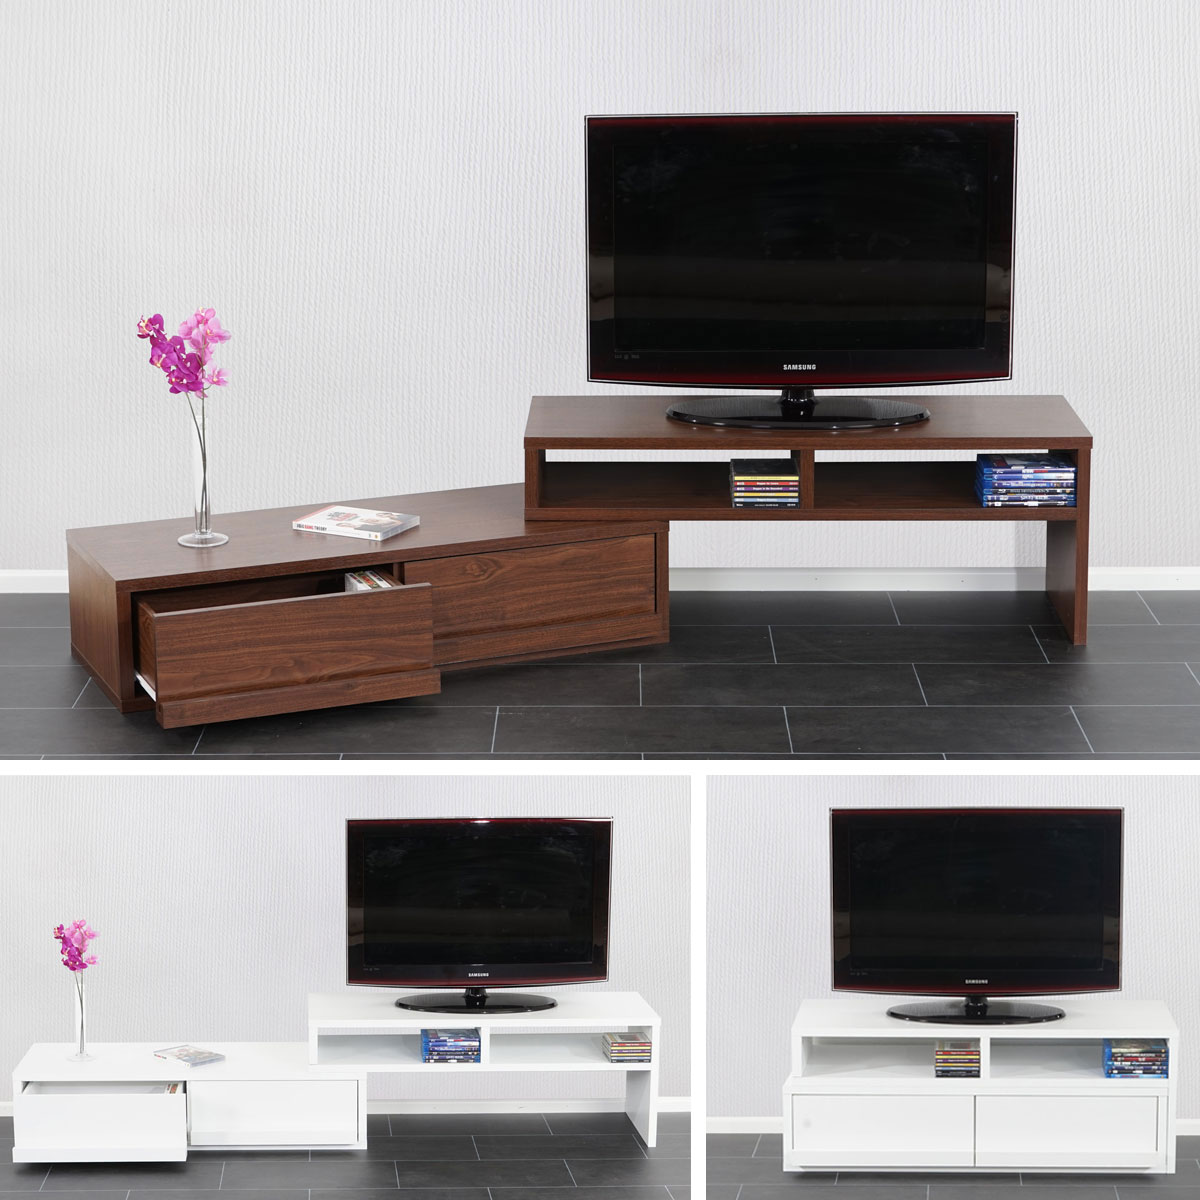 tv rack tv regal lowboard fernsehtisch namur verschiebbar ausziehbar ebay. Black Bedroom Furniture Sets. Home Design Ideas